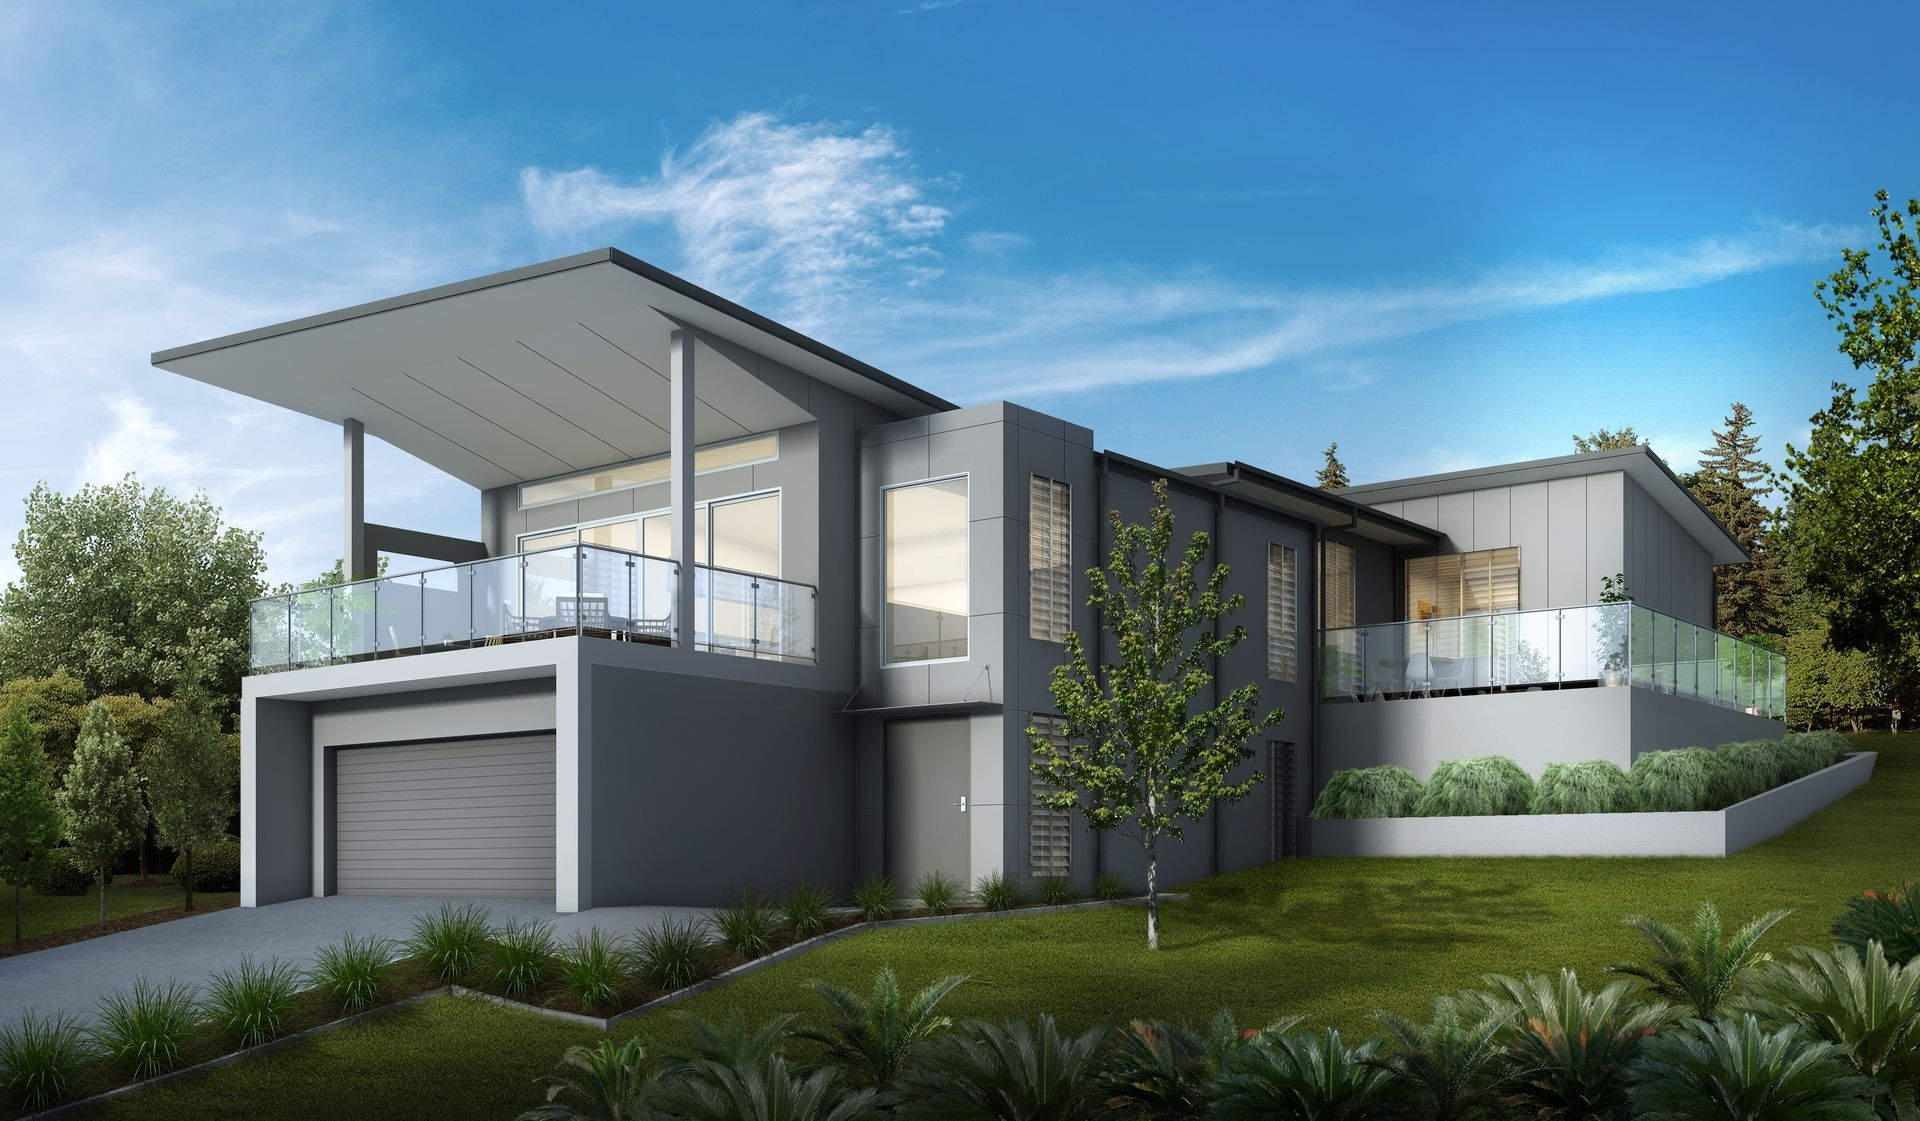 How much is the cost of hiring a professional architect for Home designs australia